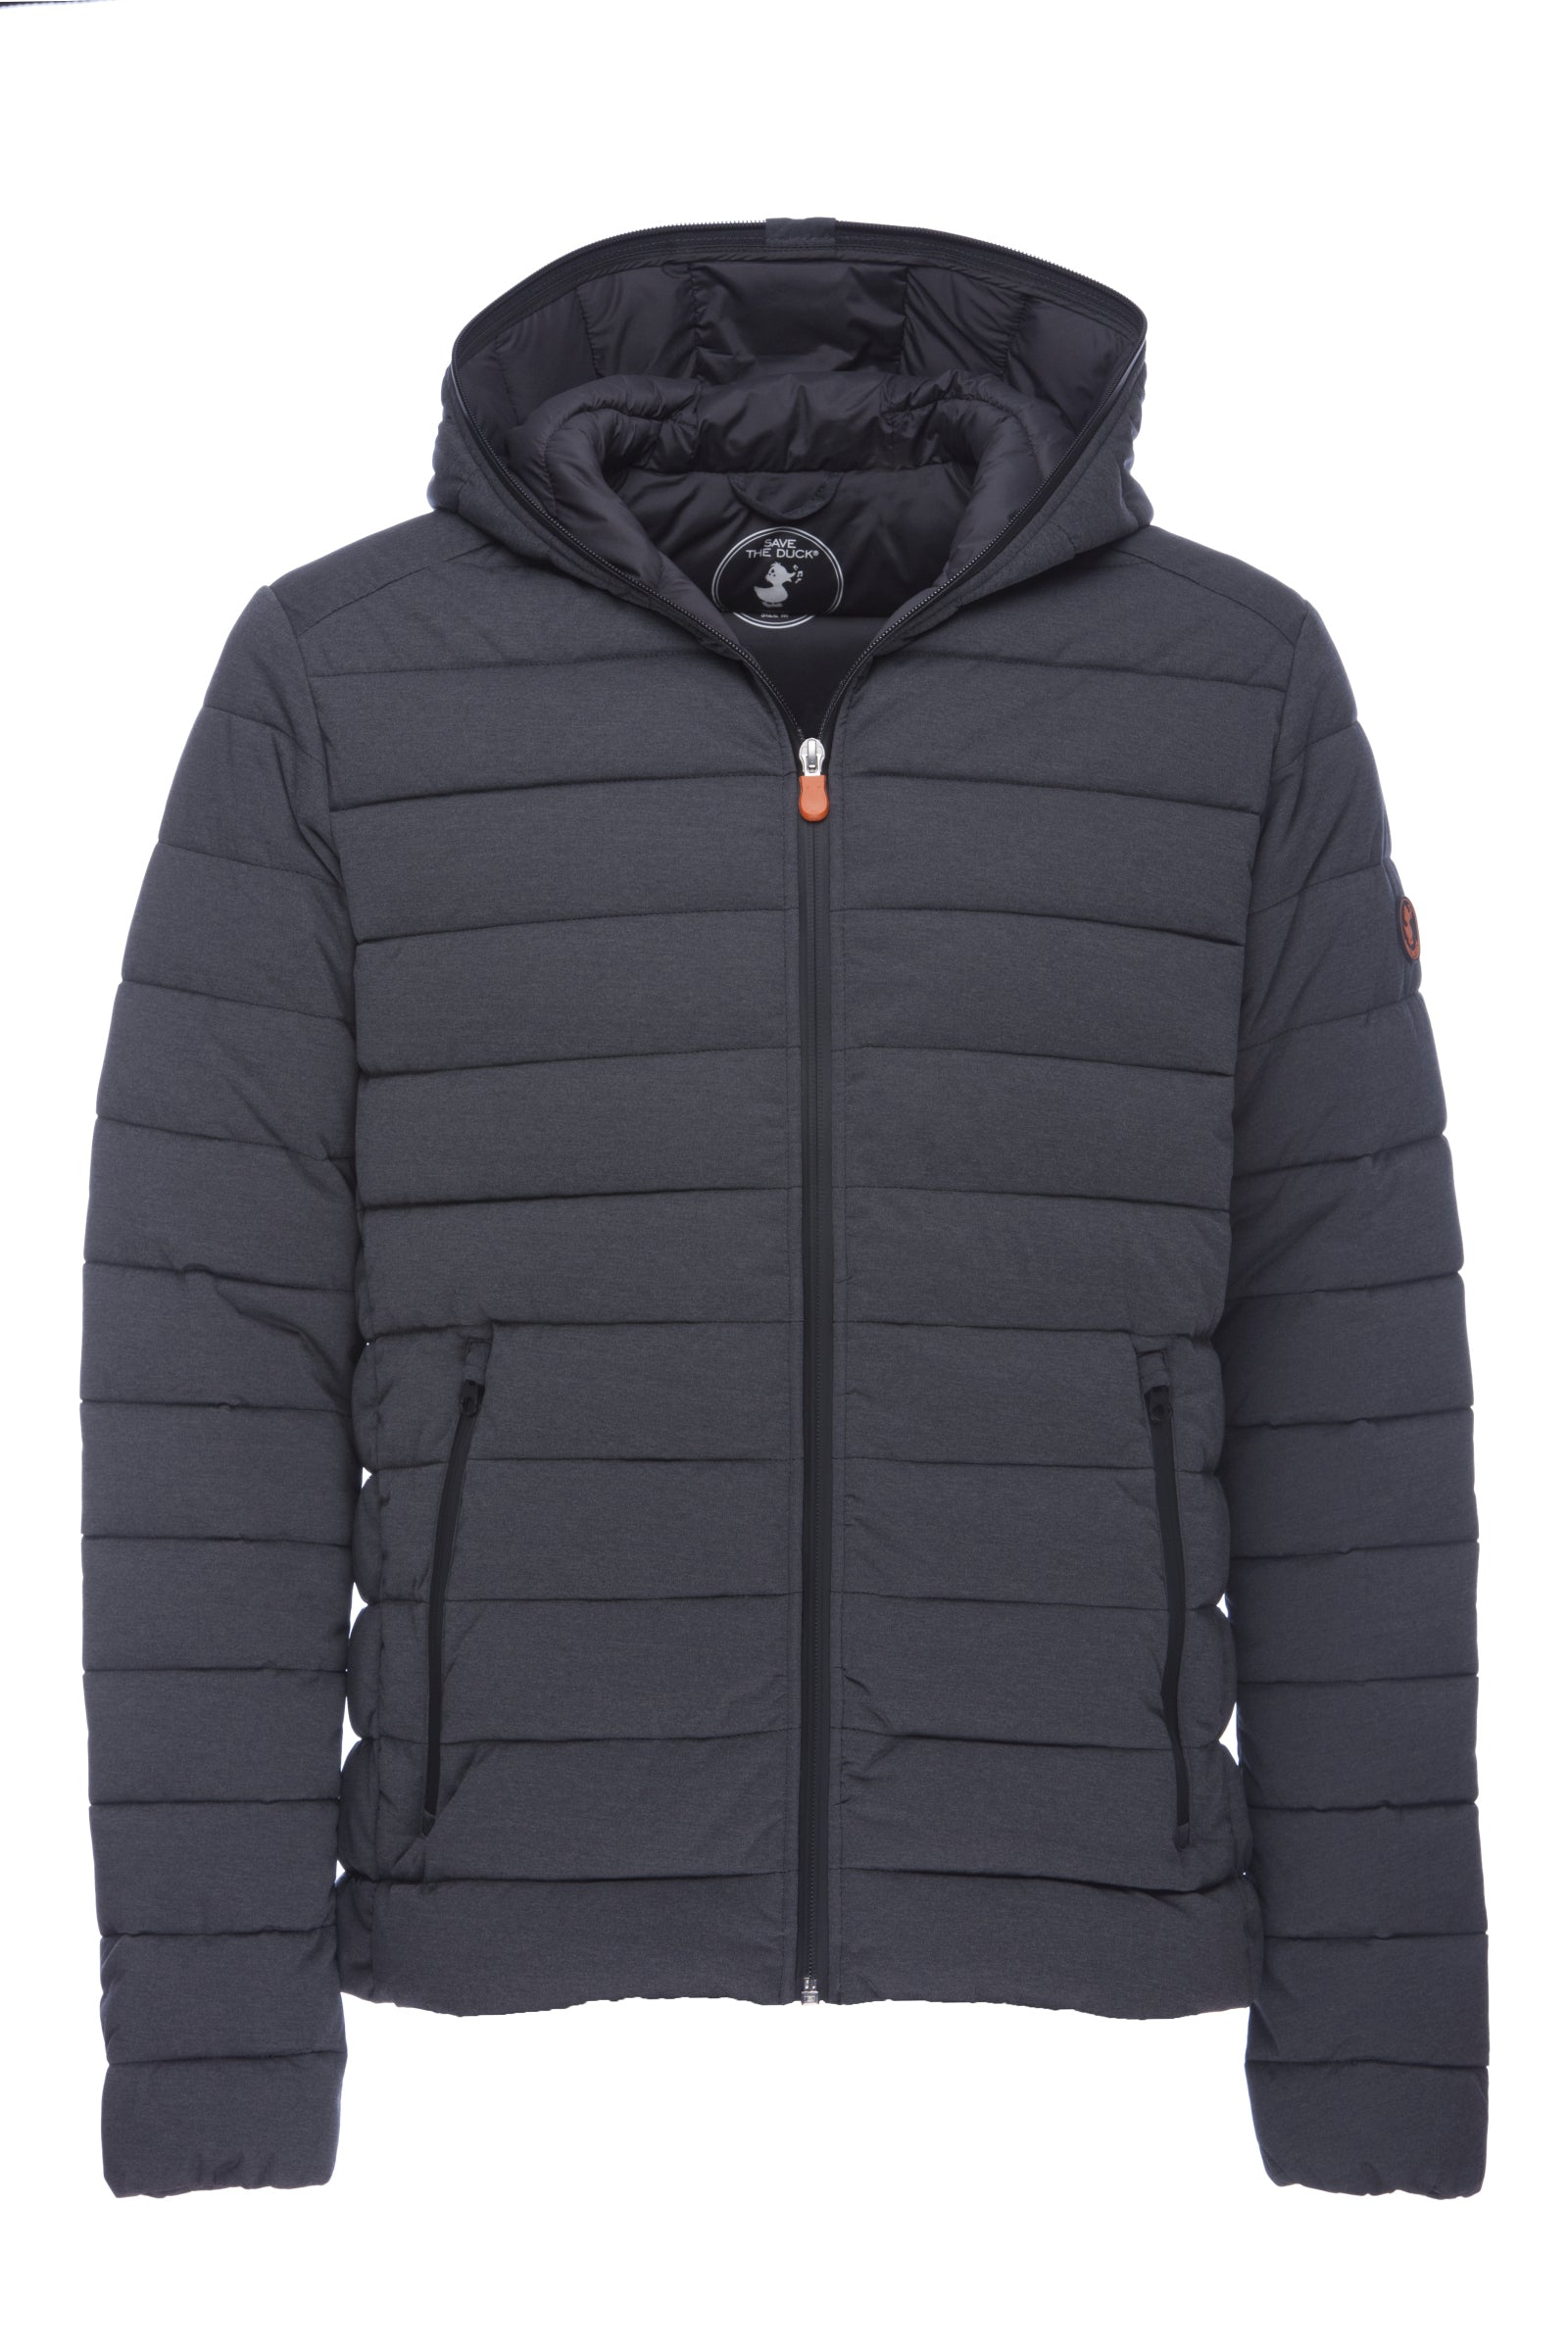 ed09e3e478a Save The Duck Men s Hooded Jacket in Charcoal Grey Melange - Save the Duck